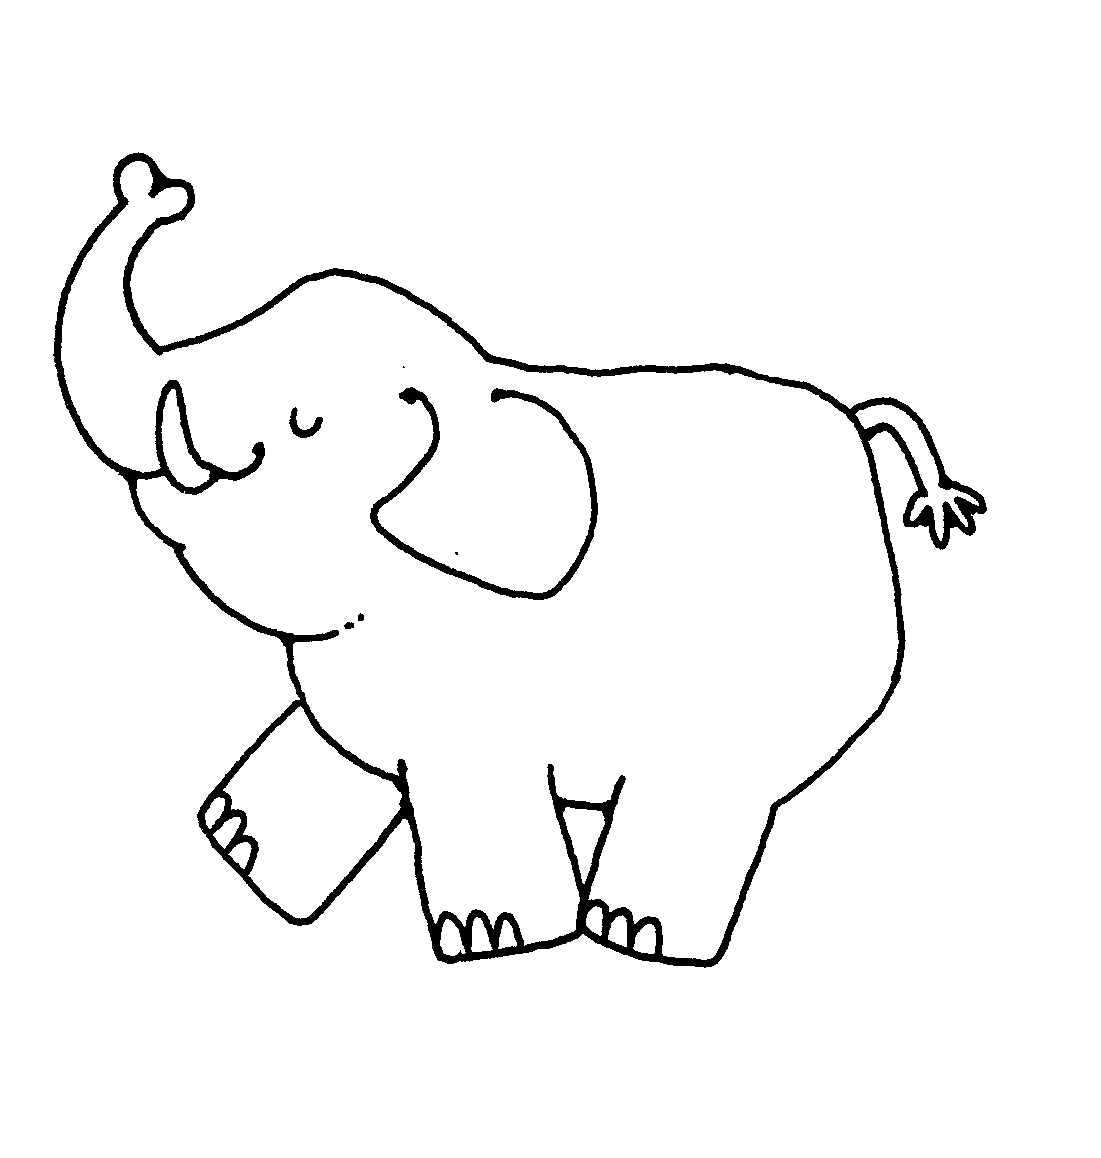 Black And White Elephant Pictures - Cliparts.co